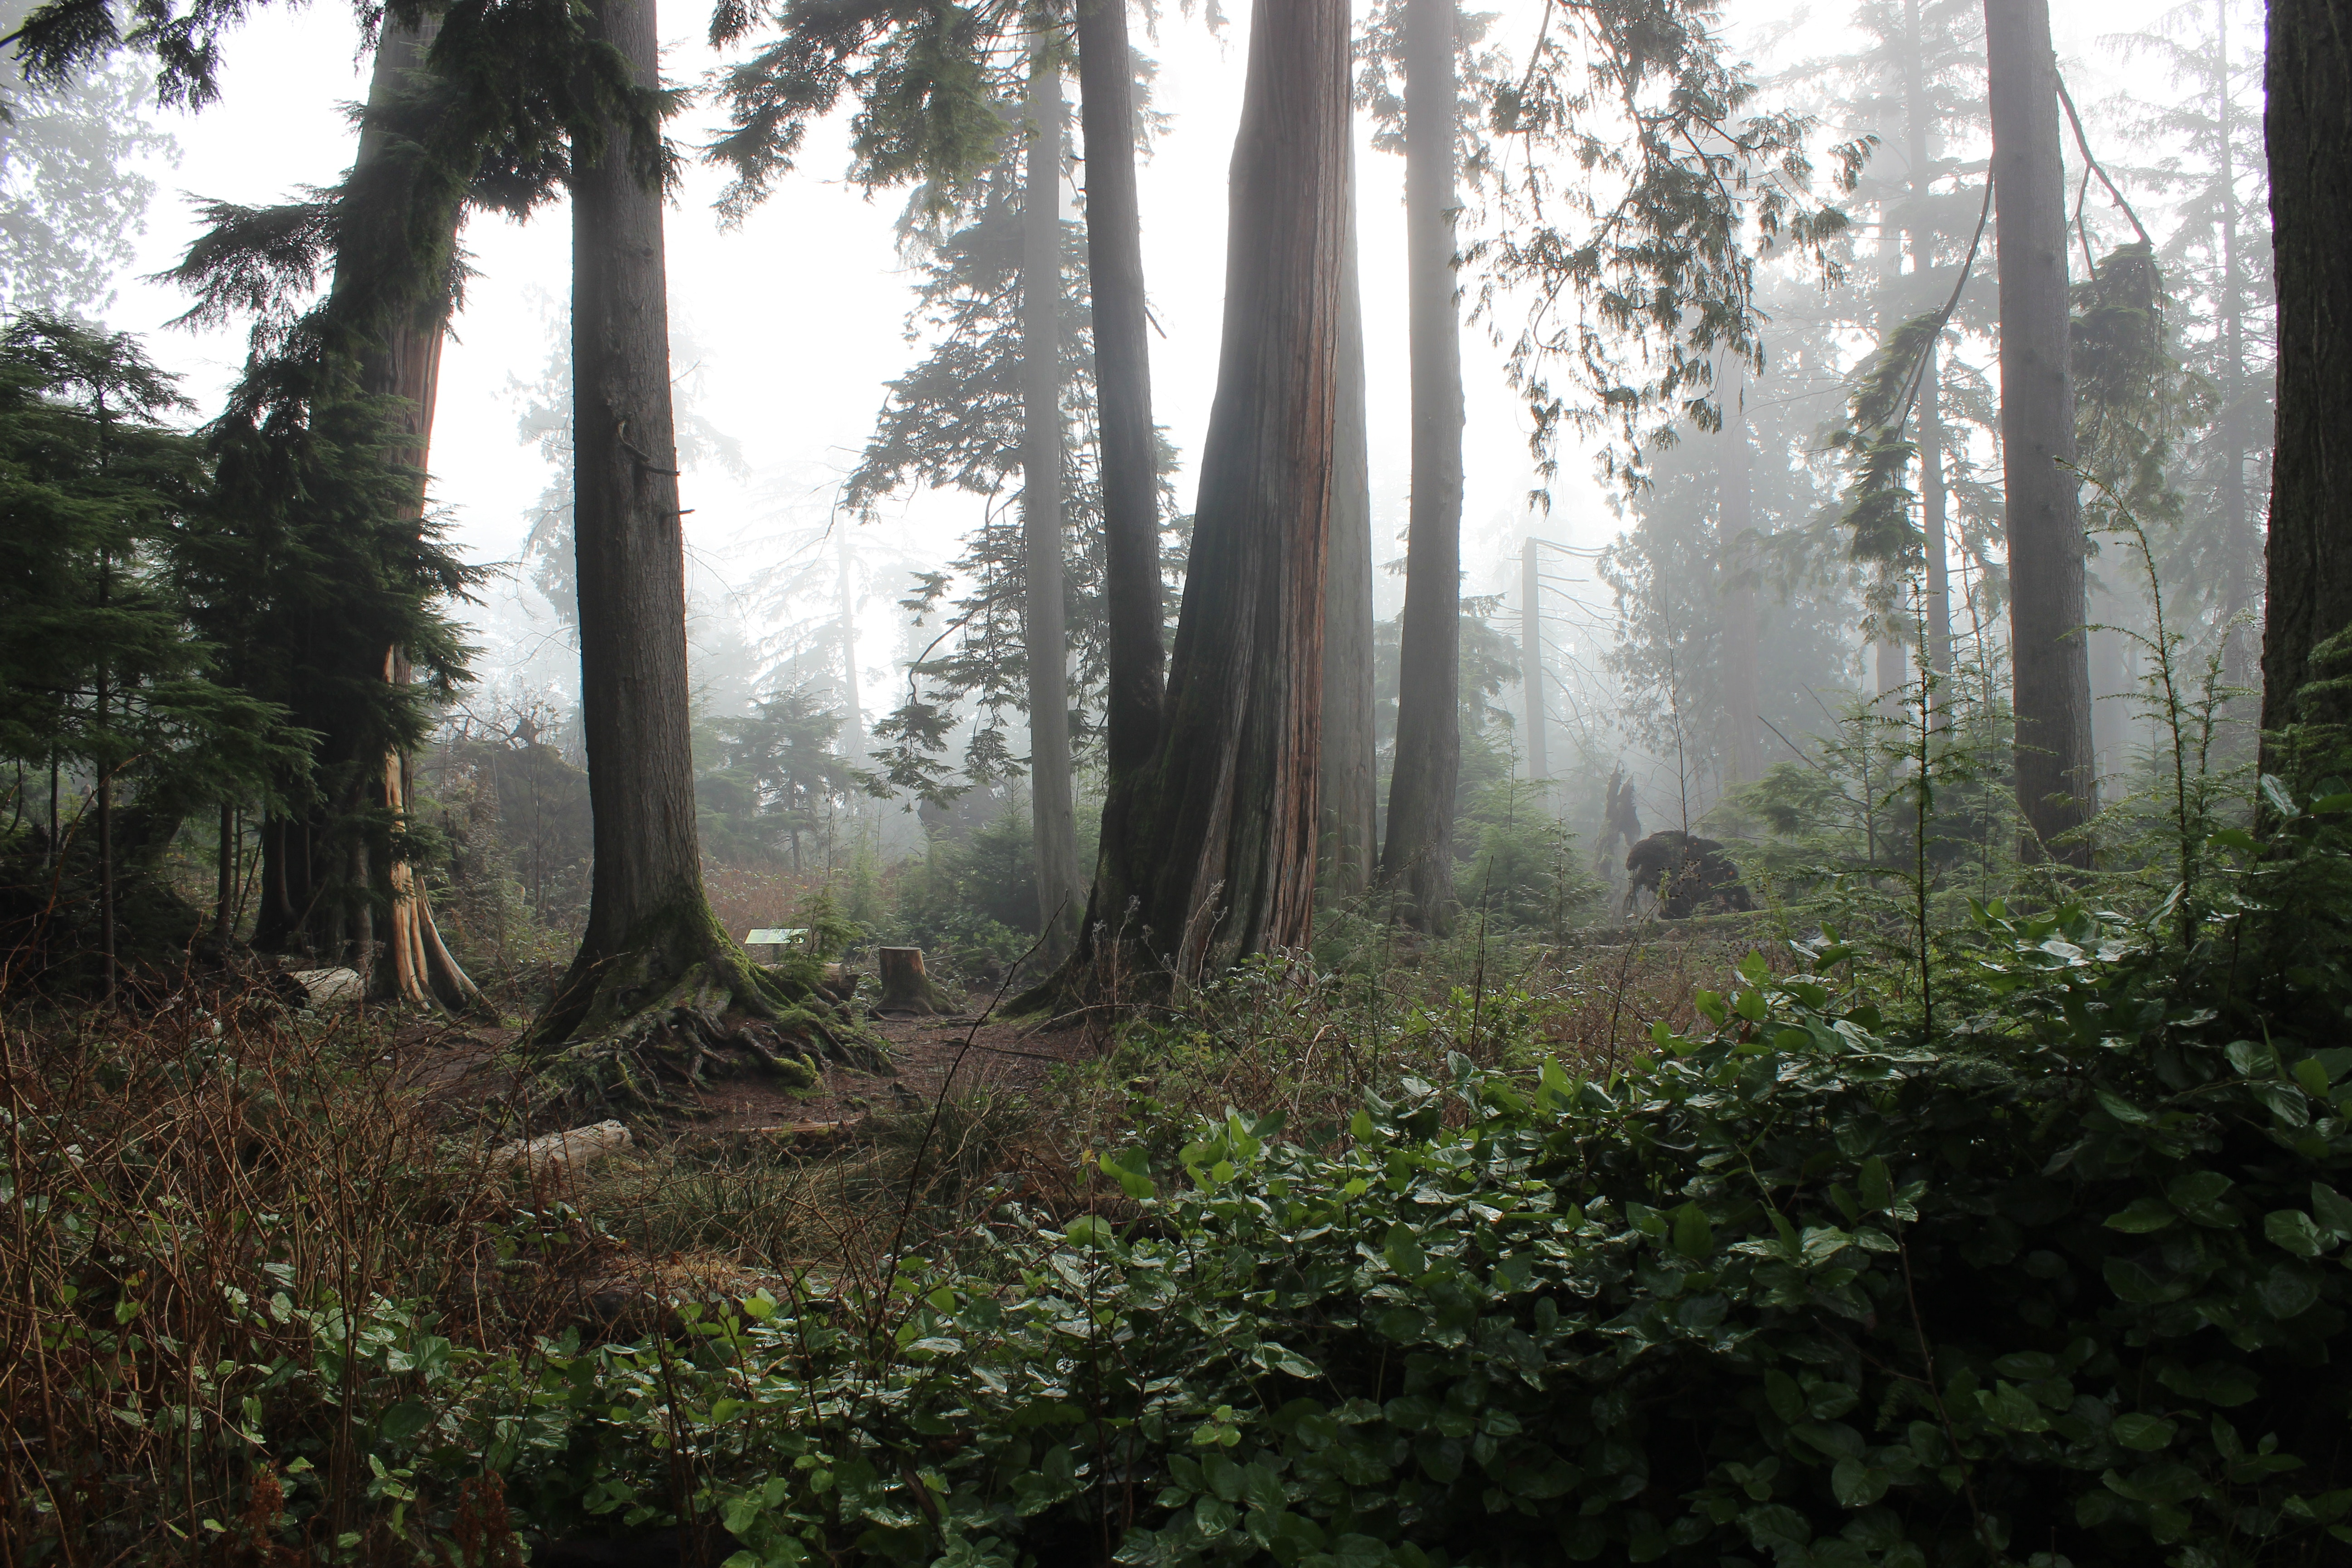 BC wildfires hurting tourism